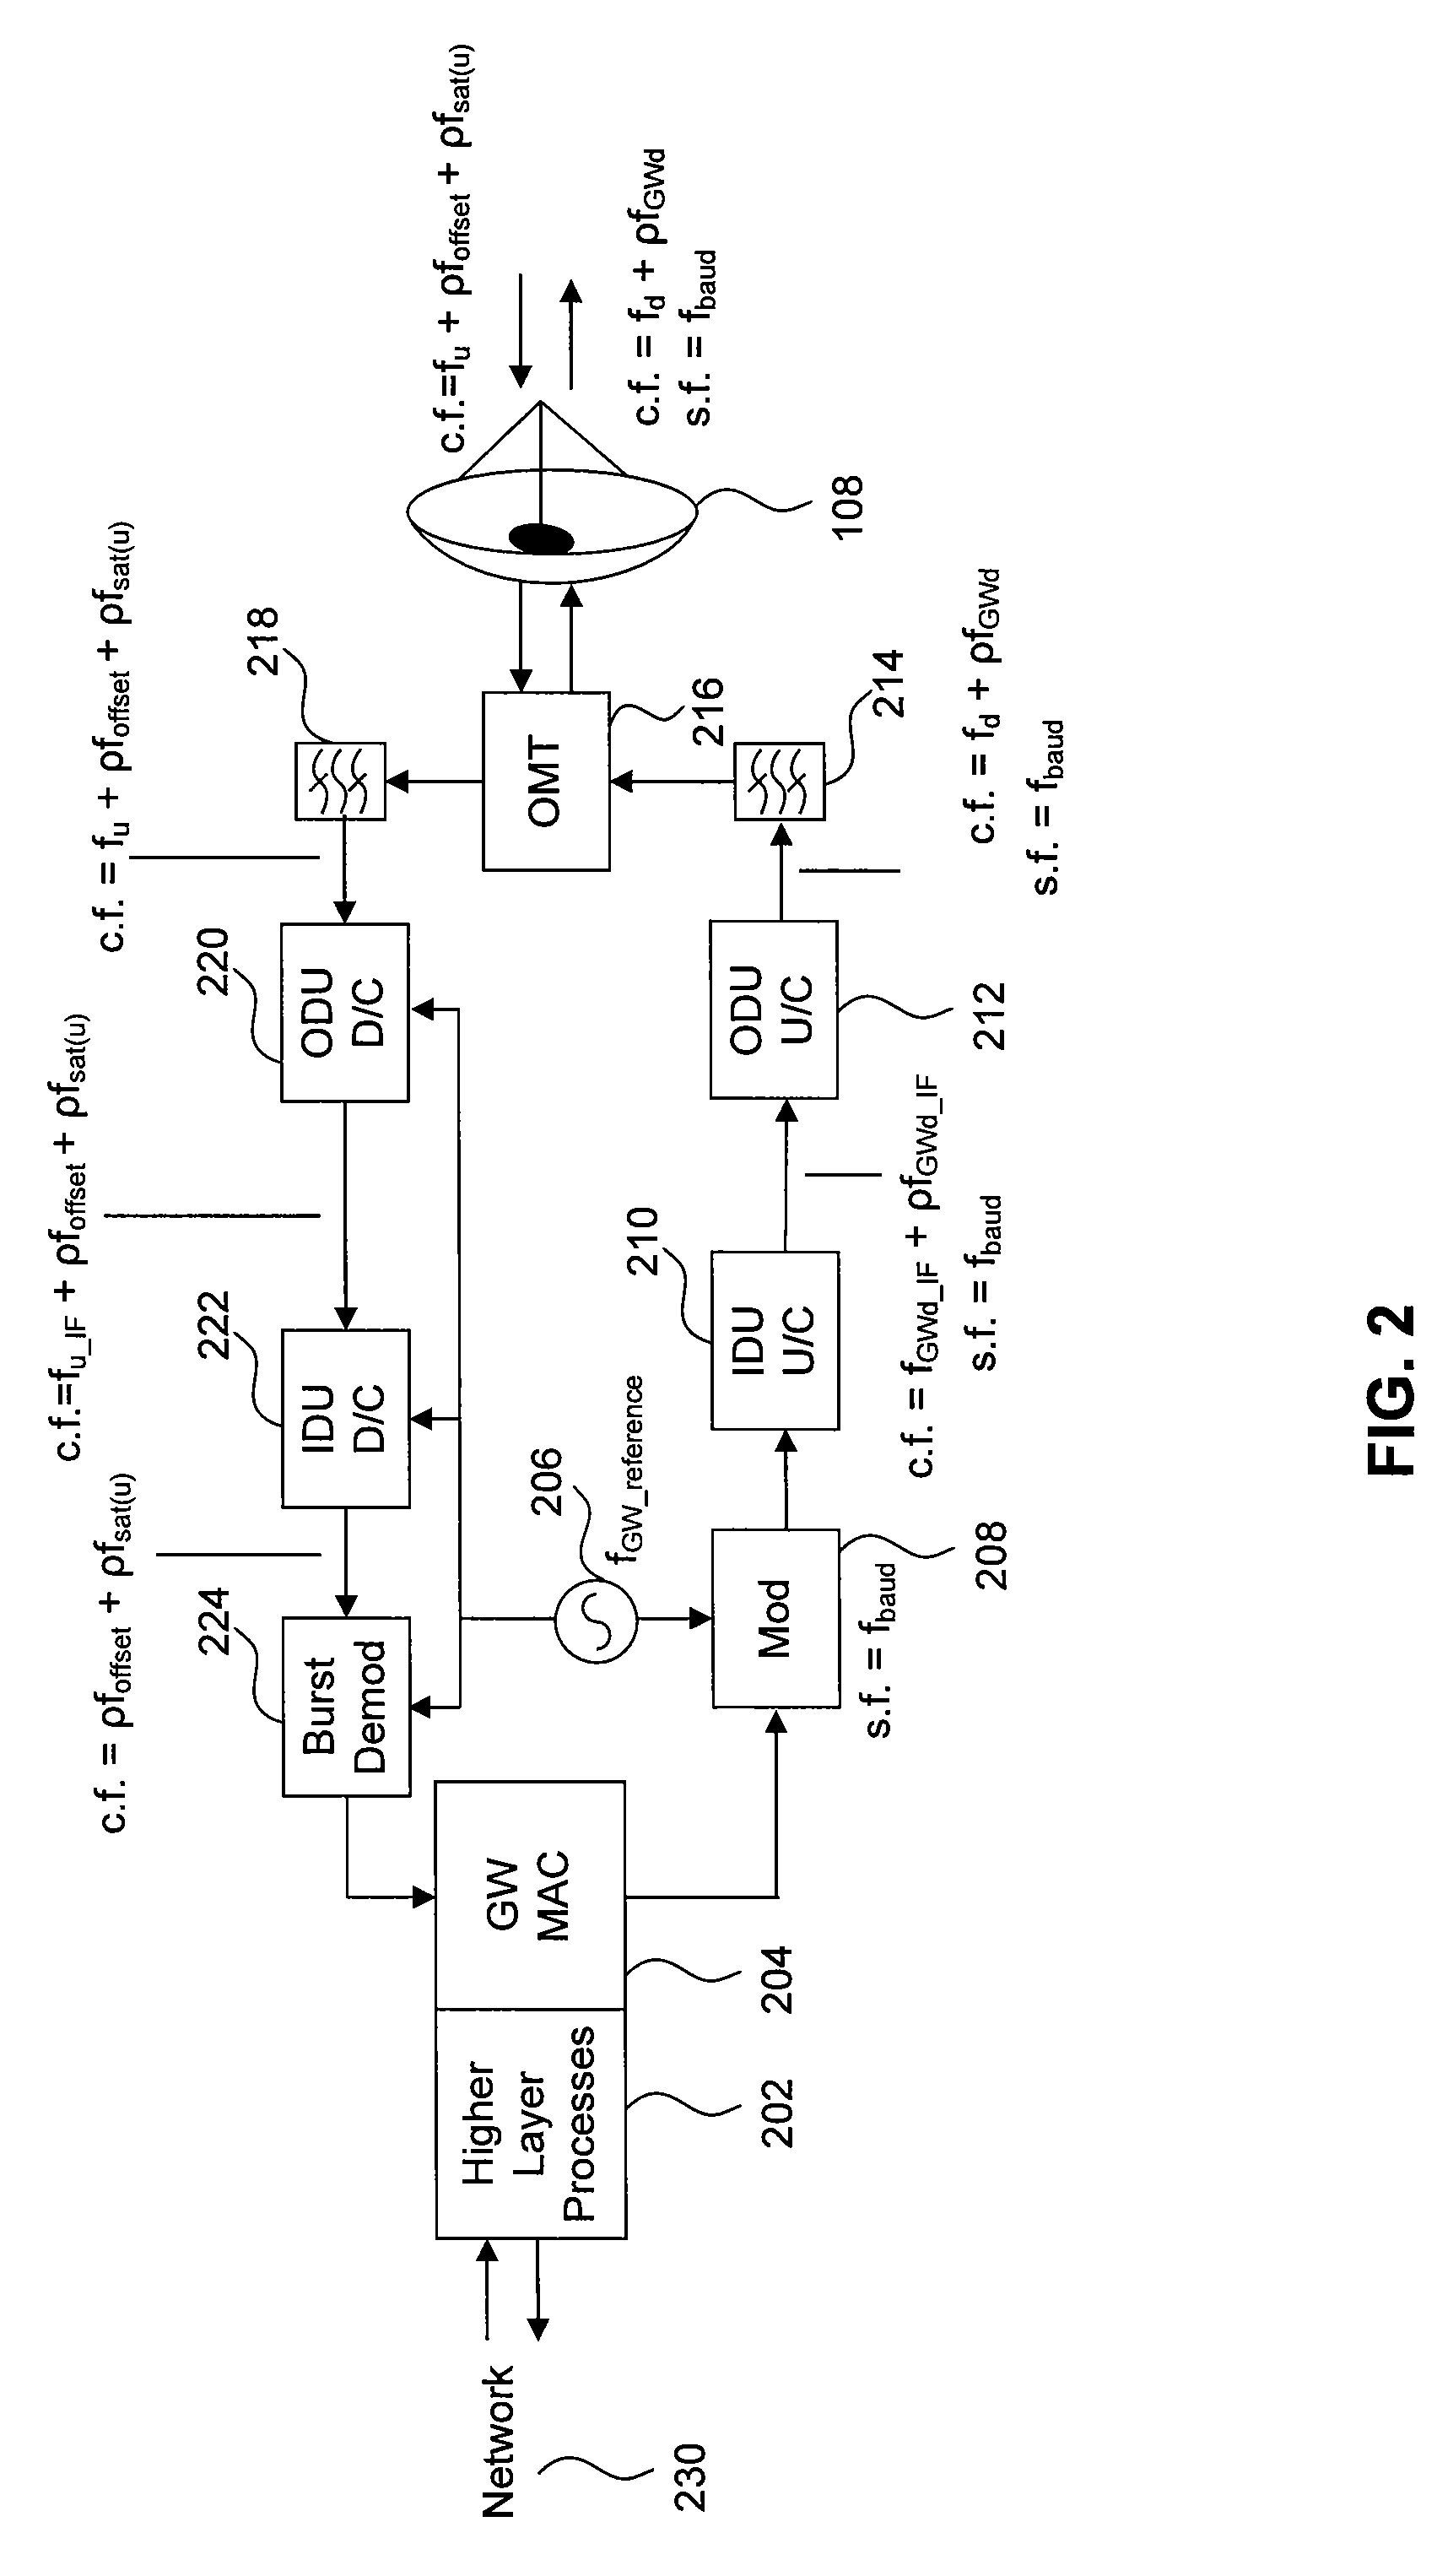 patent us7463707 - upstream frequency control for docsis based satellite systems